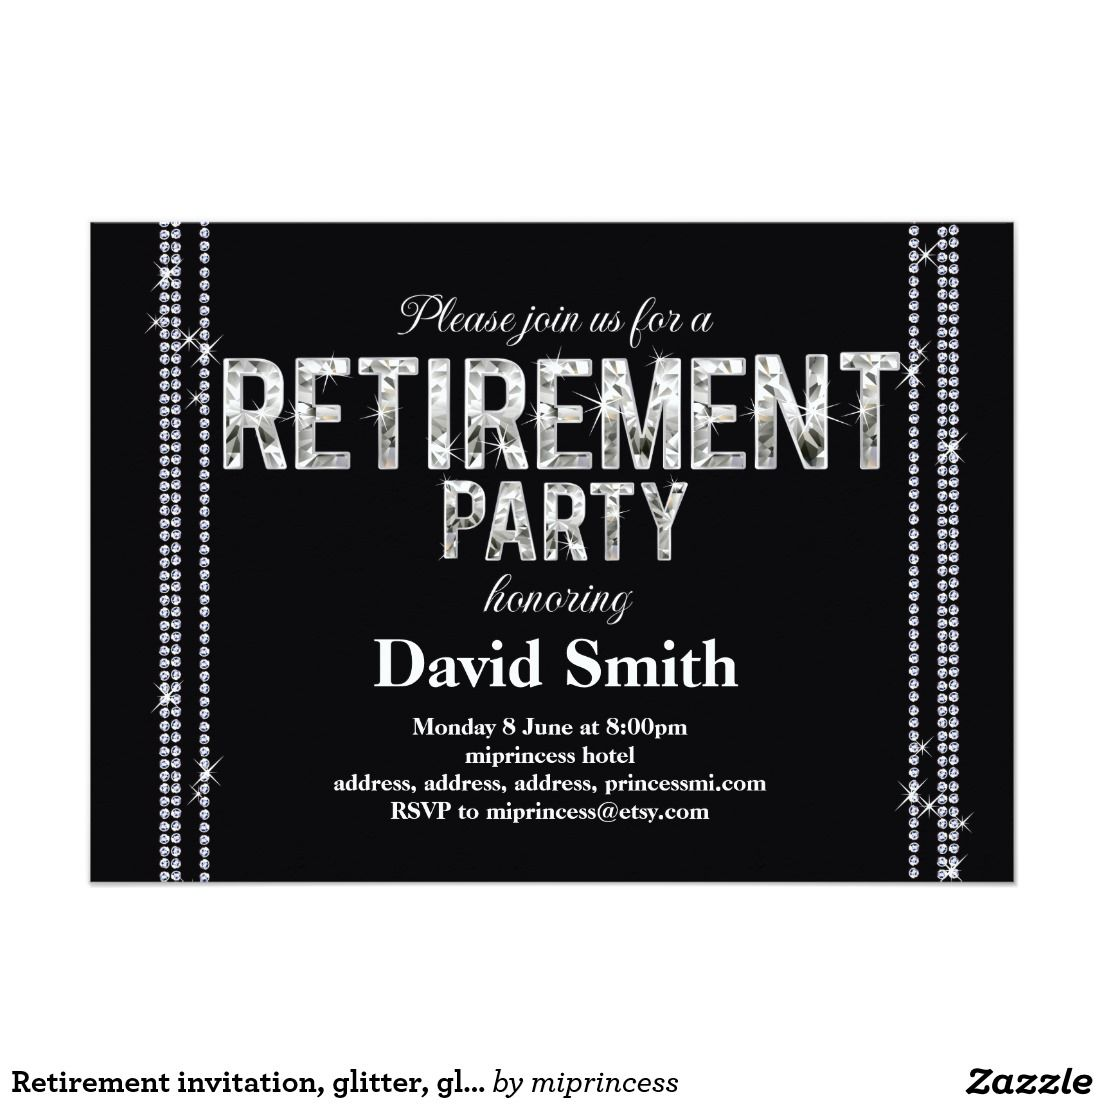 Retirement Invitation Glitter Glam Black  Invitation